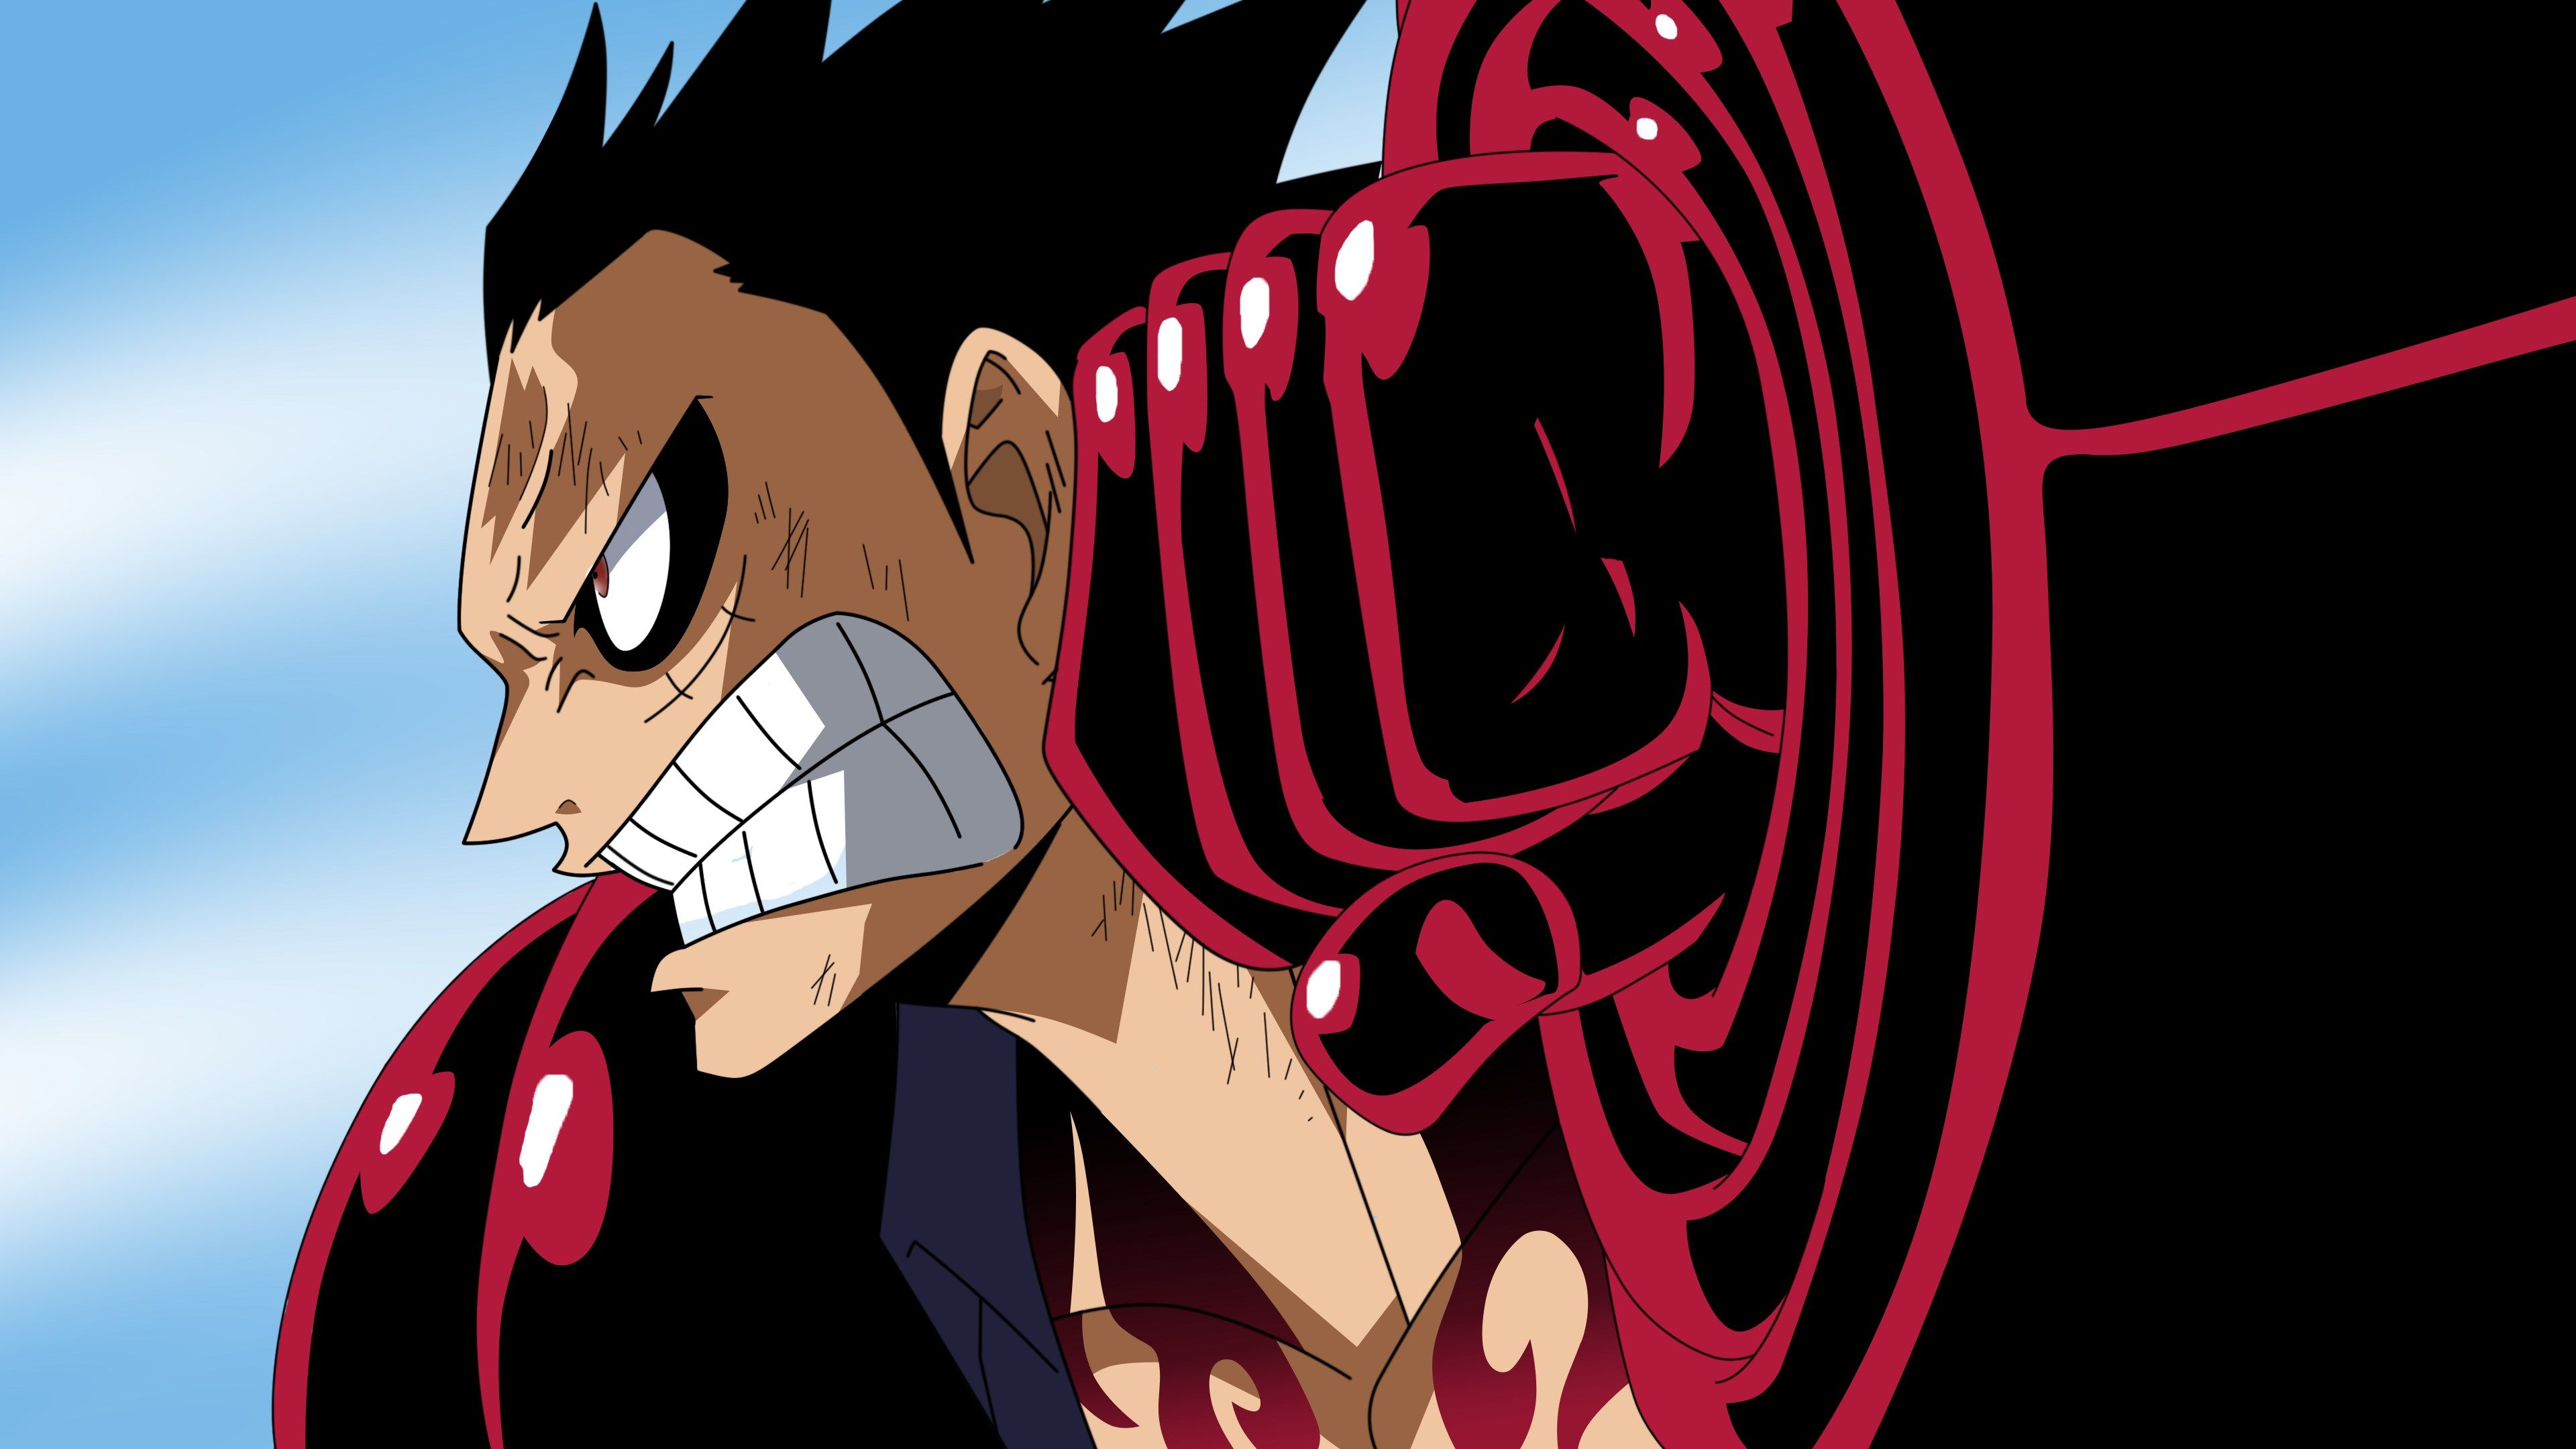 4k One Piece Hd Wallpaper 3840x2160 Wallpapers And Backgronds